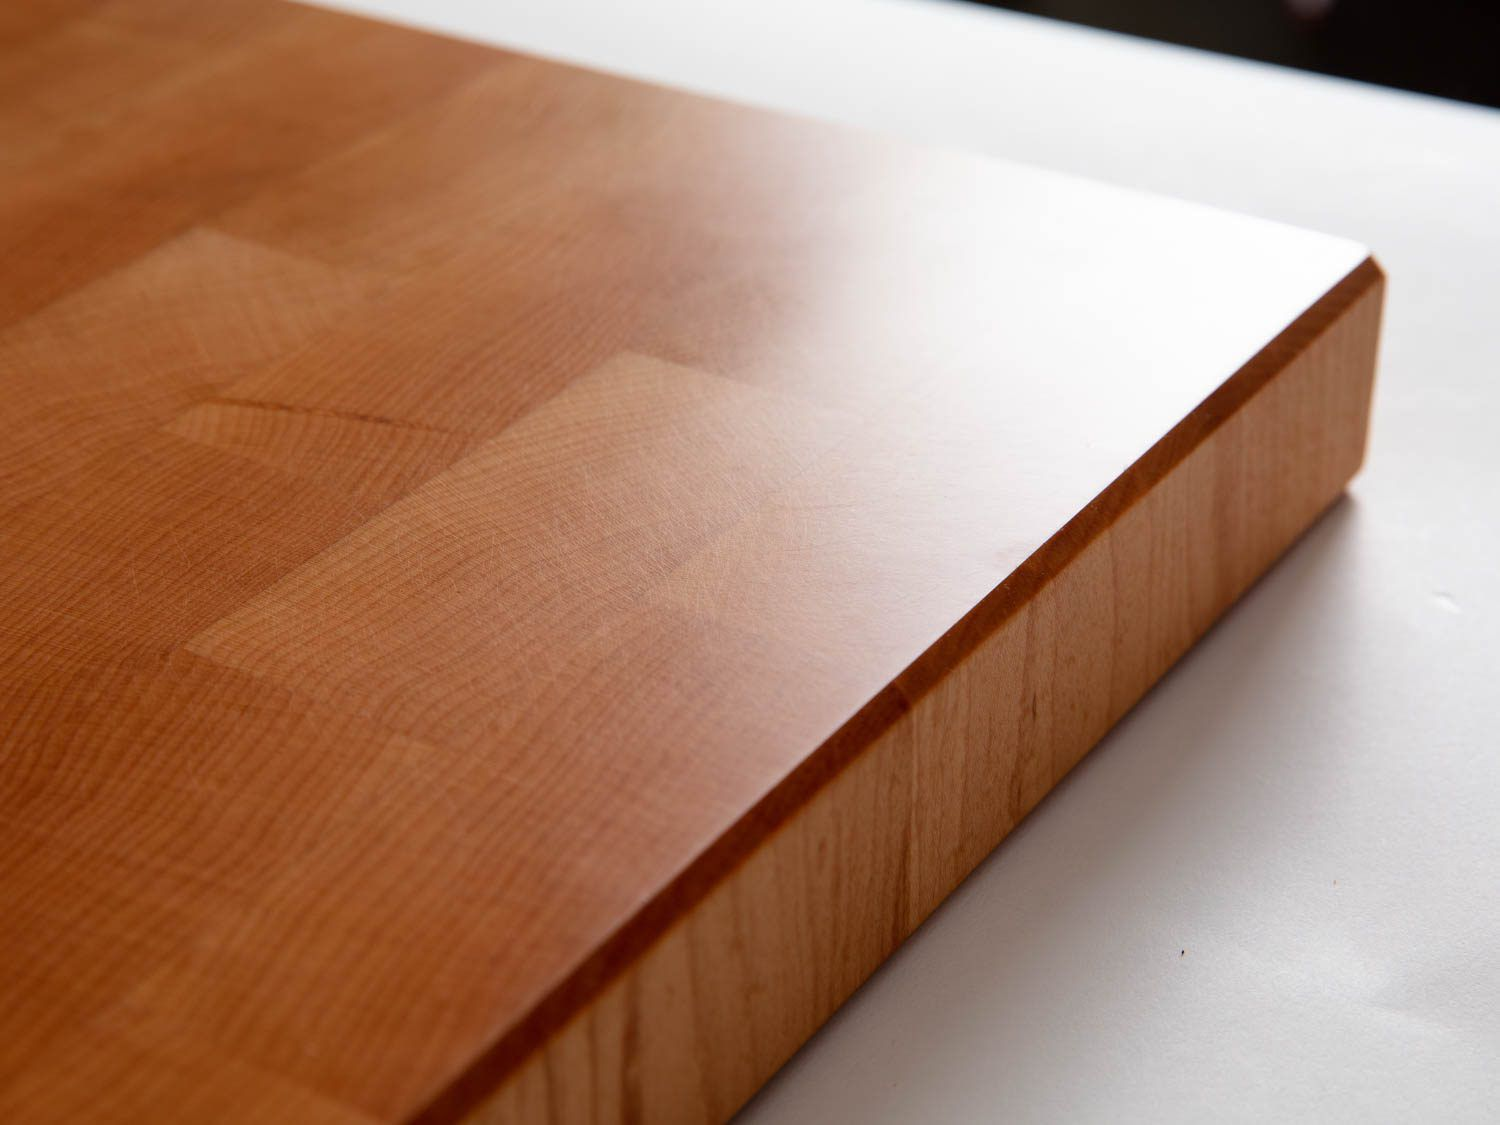 The fine finish on Brooklyn Butcher Block's woodwork, showing how light shines off the incredibly smooth surface.